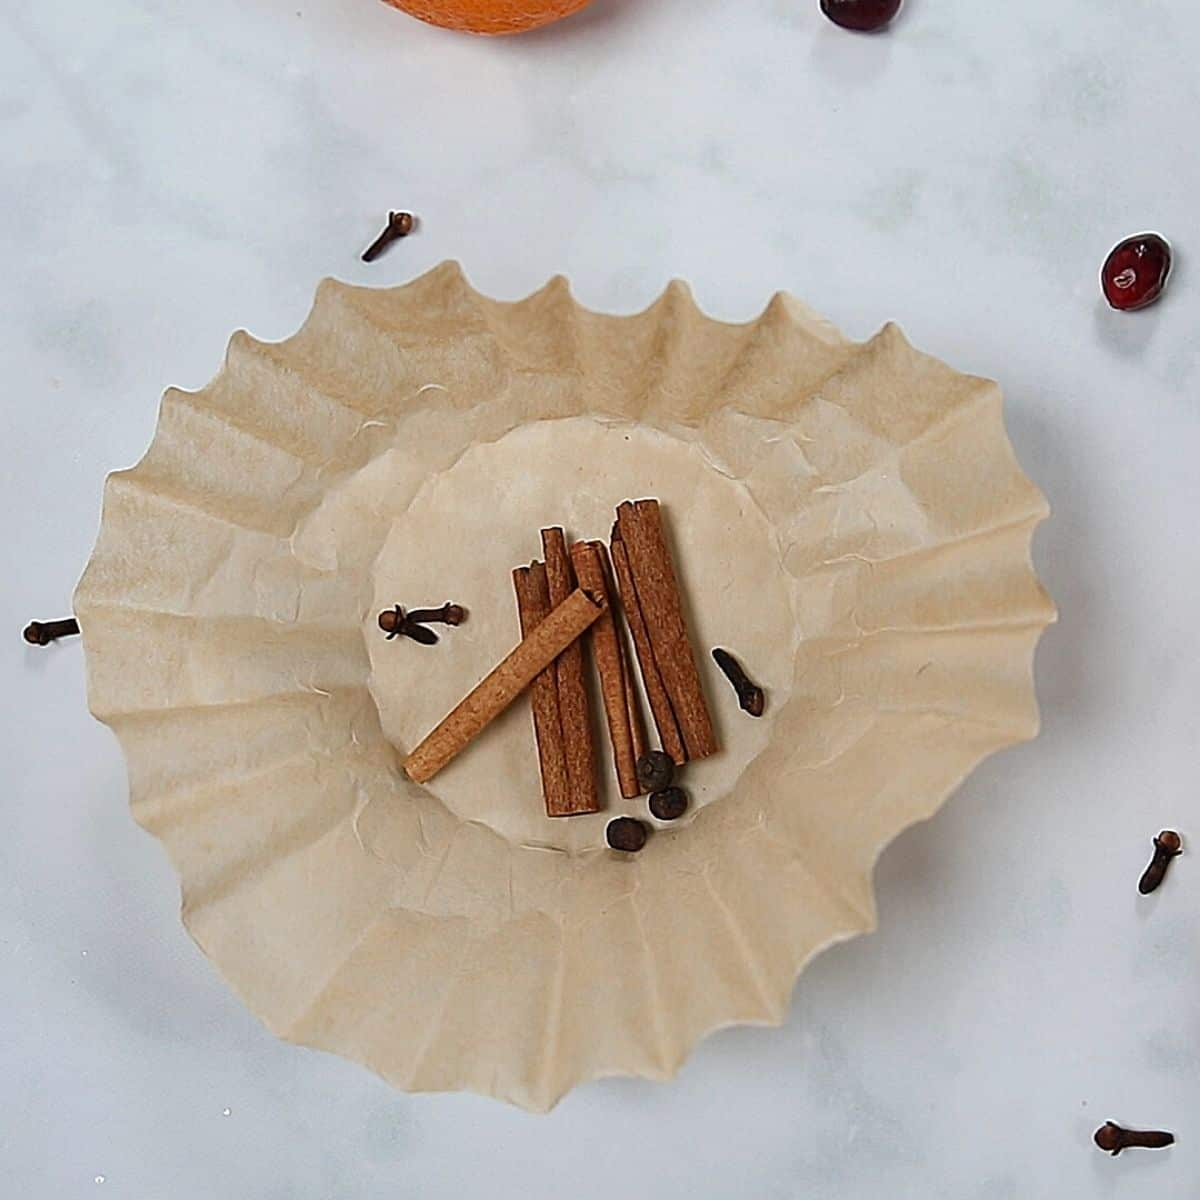 Whole spices on coffee filter.